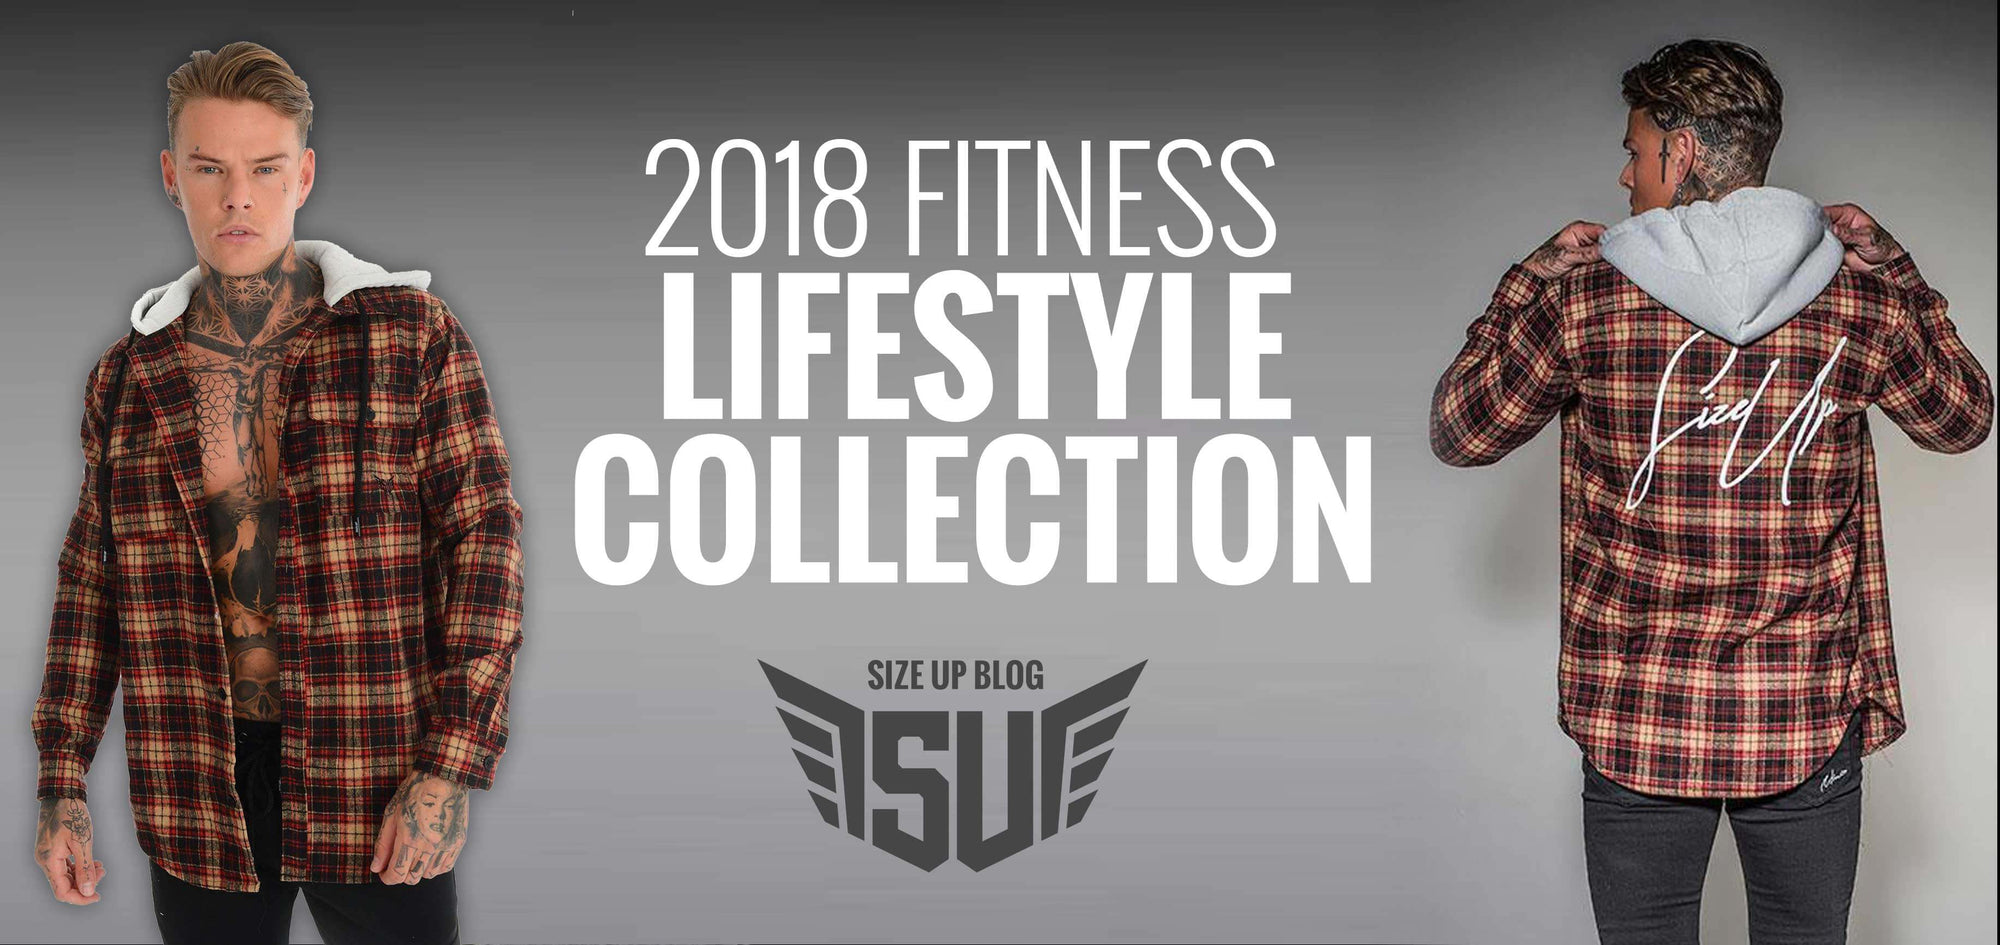 2018 Fitness Lifestyle Collection